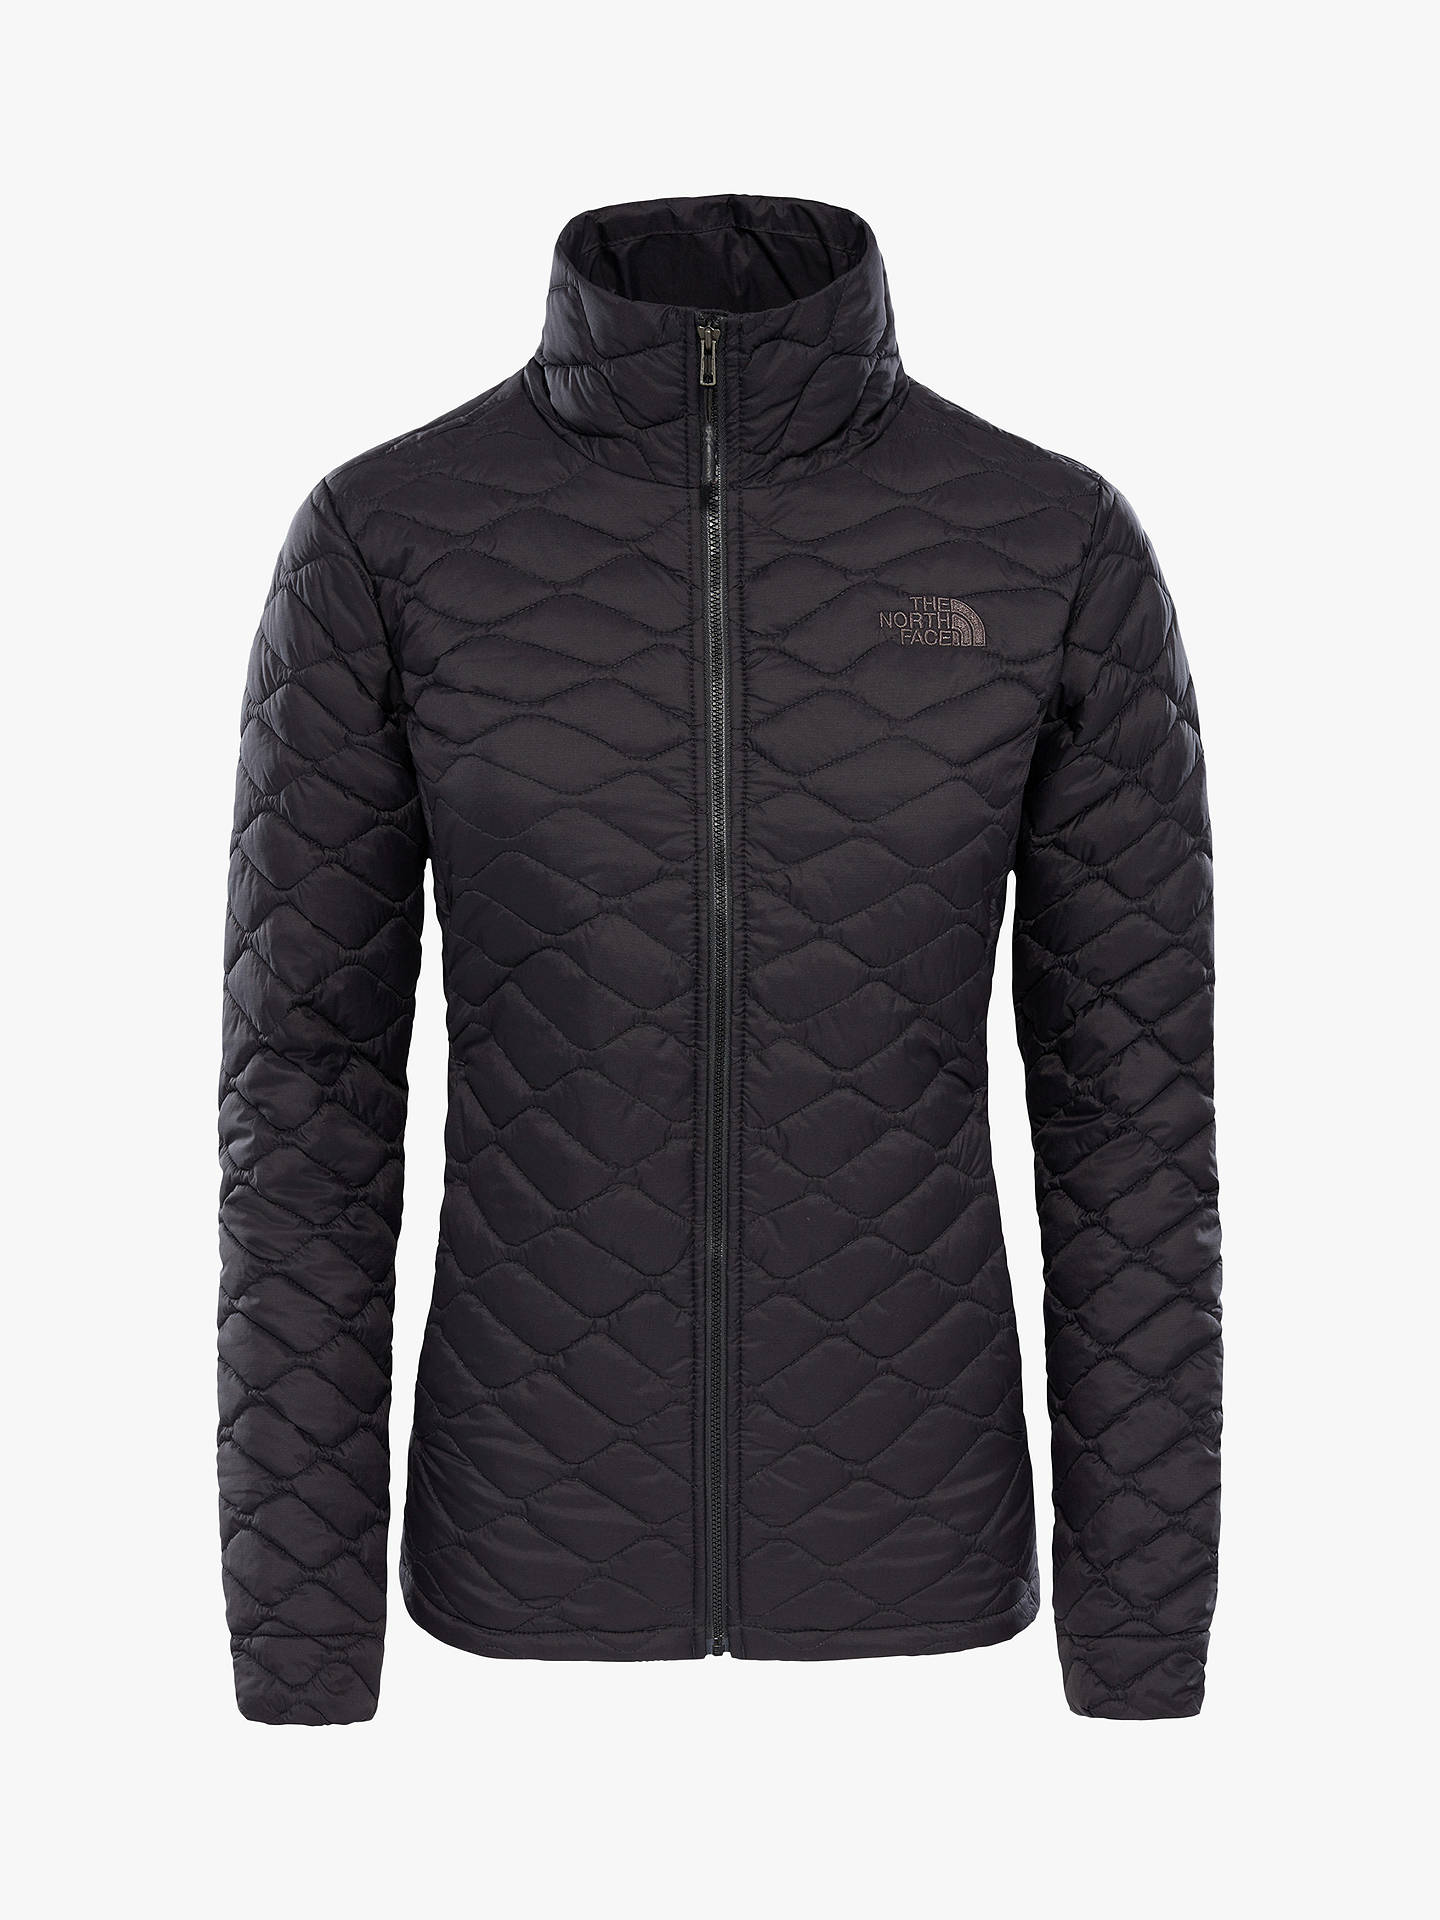 2e1098de1 The North Face Thermoball Quilted Full-Zip Women's Insulated Jacket ...